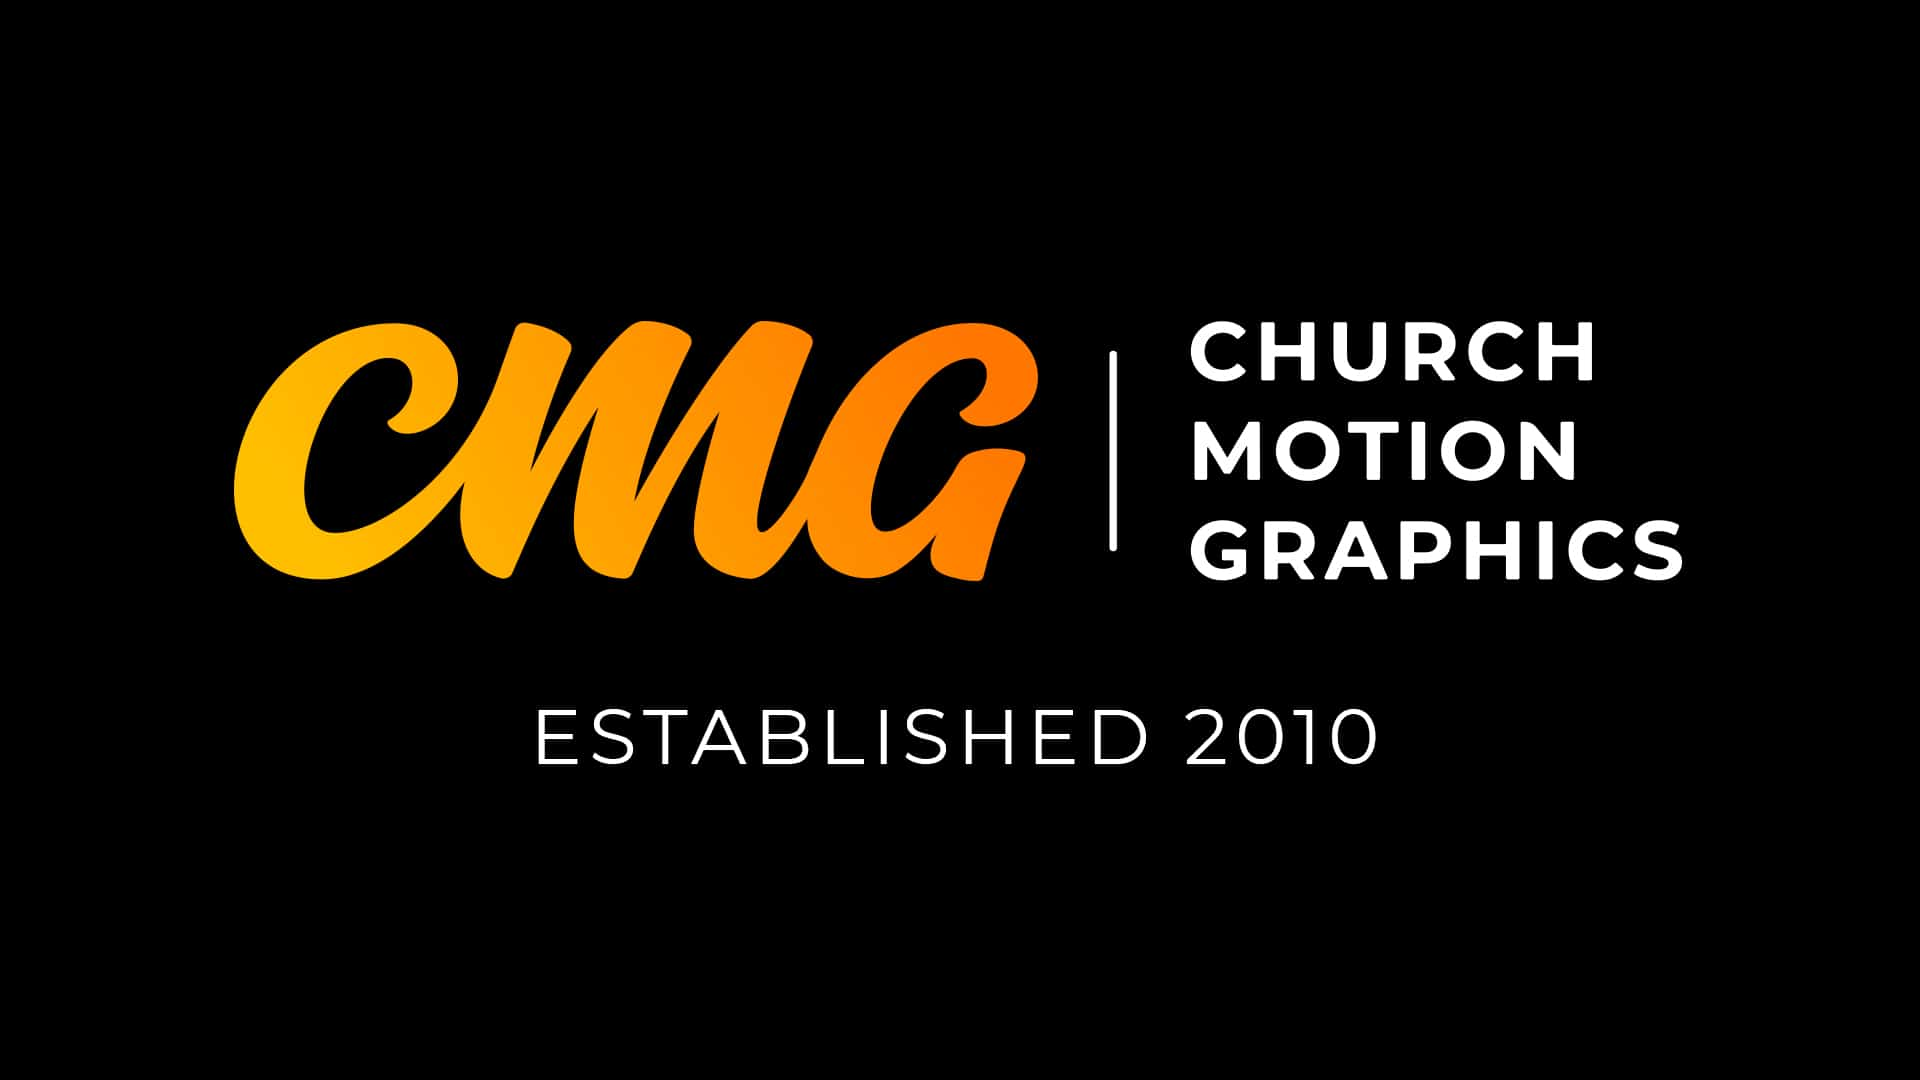 about church motion graphics cmg church motion graphics